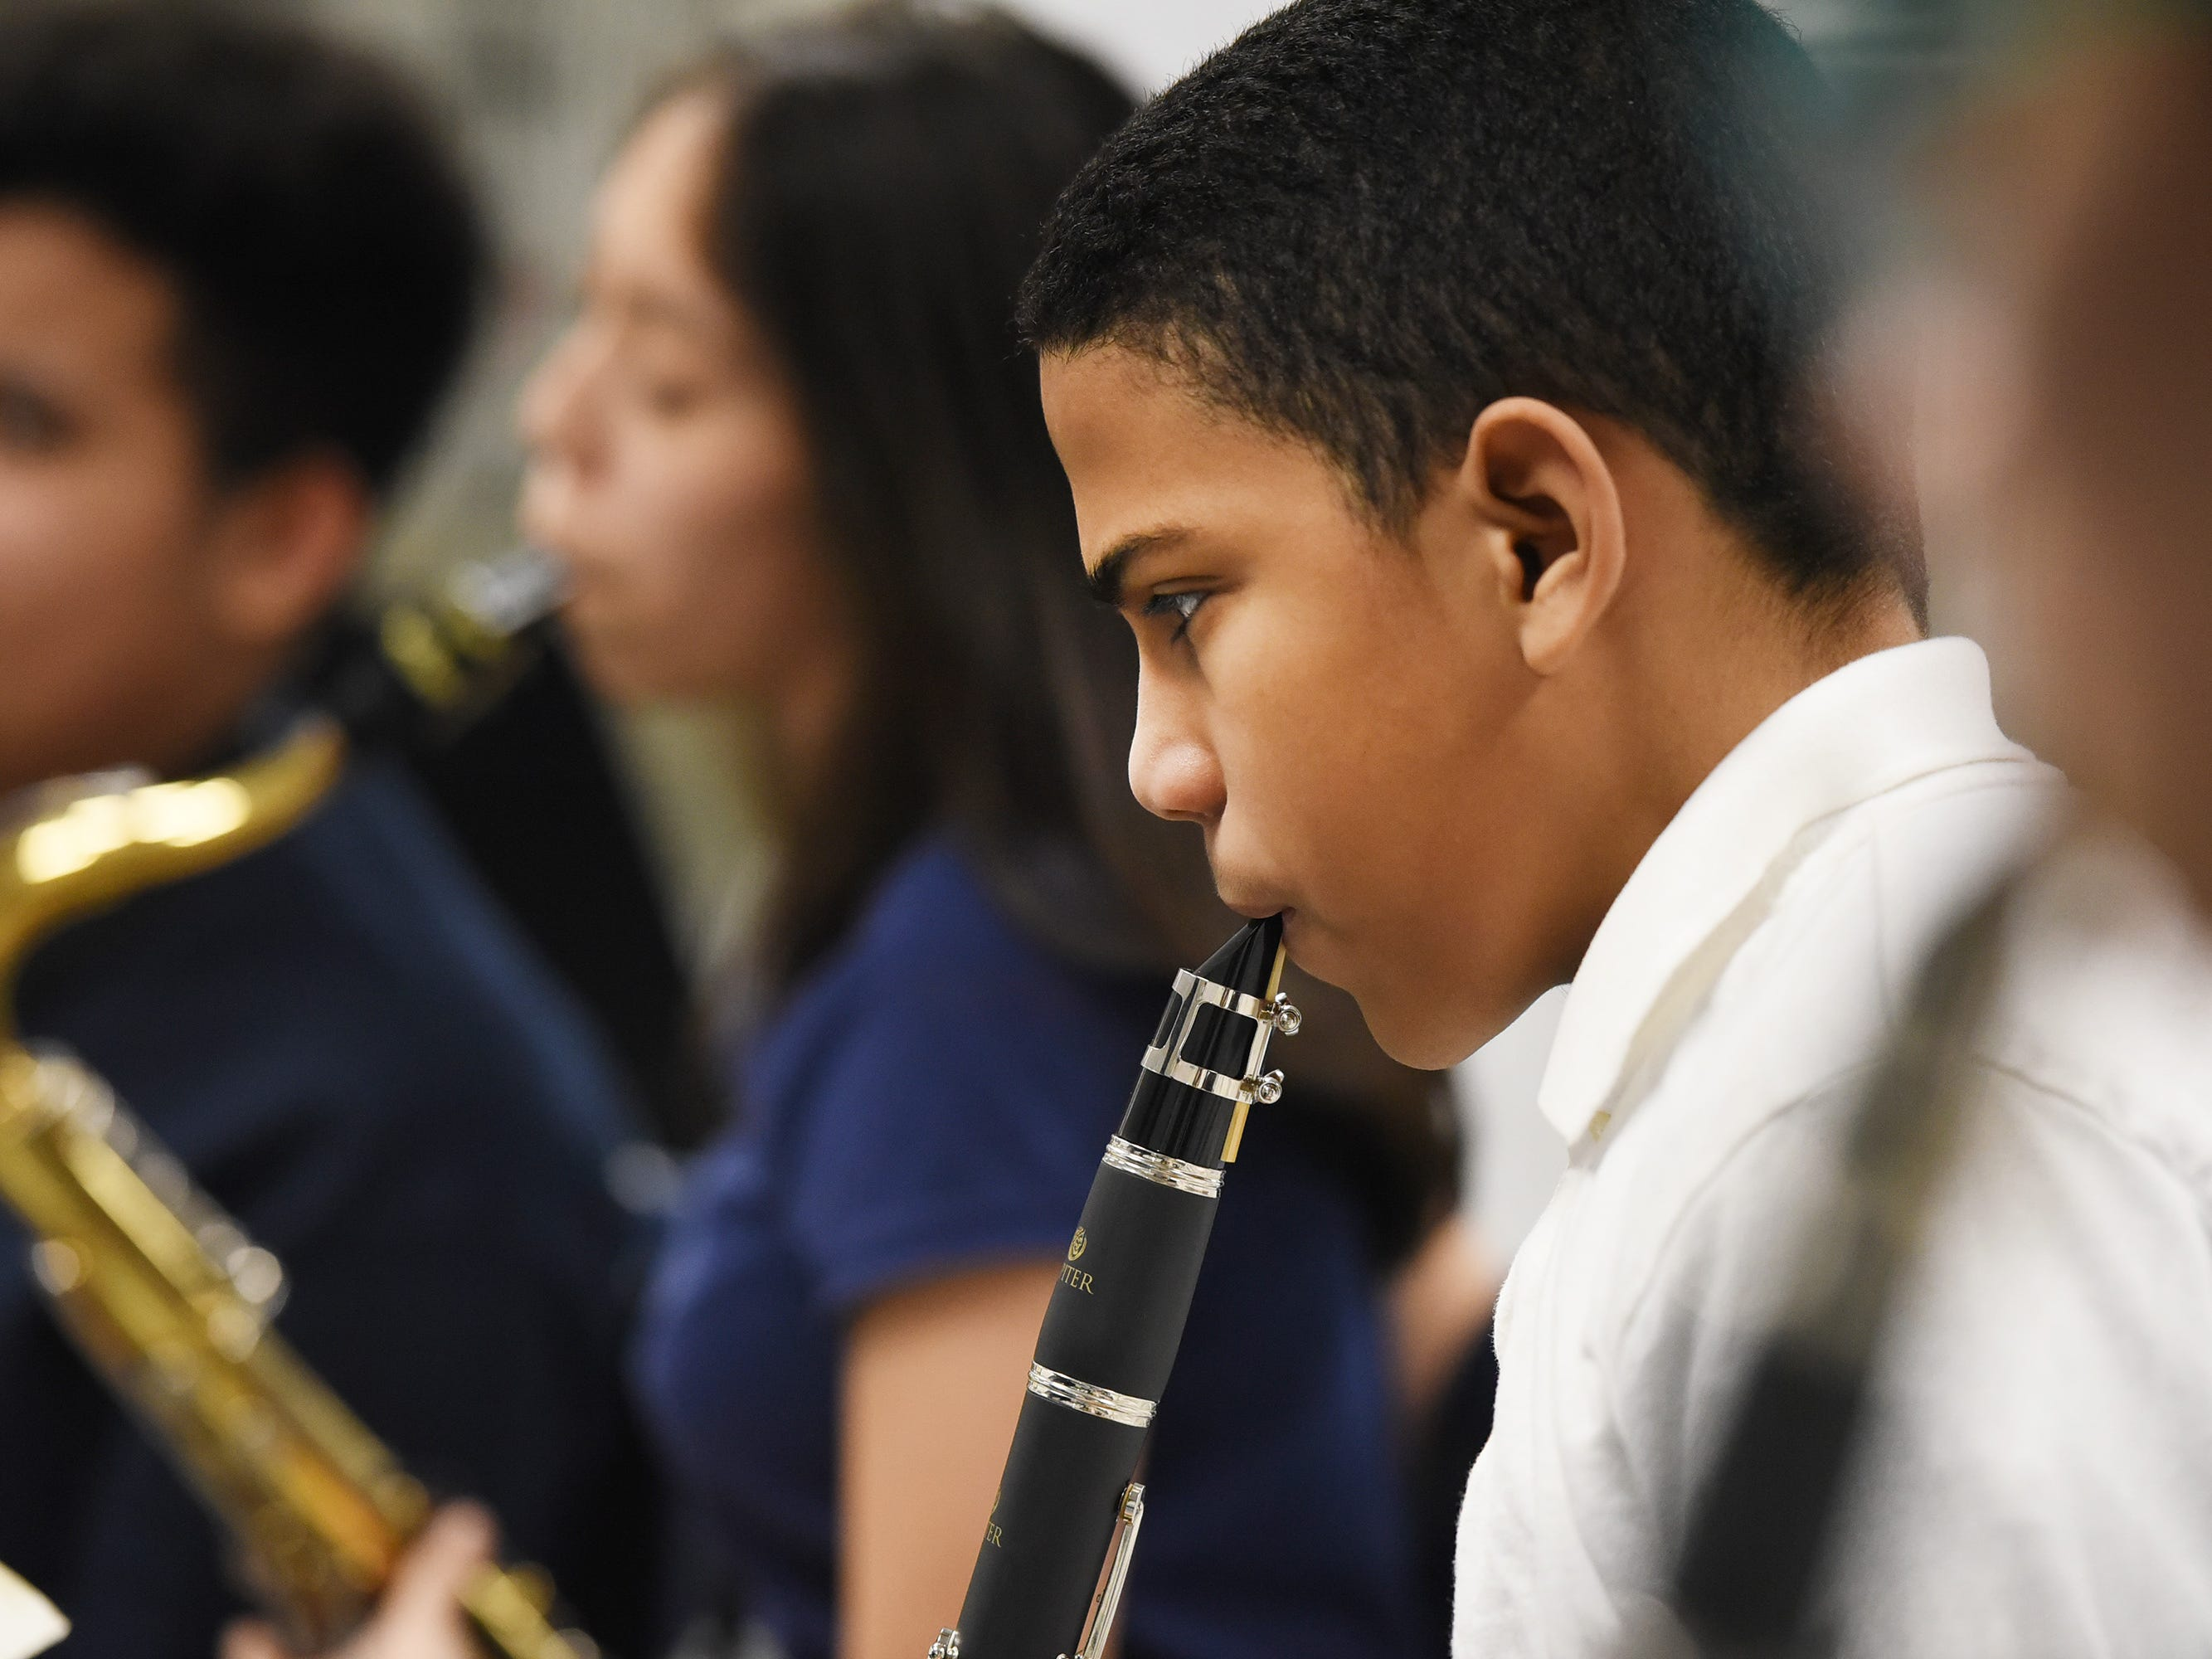 Seventh grader Odivis Cepeda plays his clarinet as he and his teammates practice led by the Band Director Nancy Horowitz during a music class at School #24 in Paterson on 01/09/19.